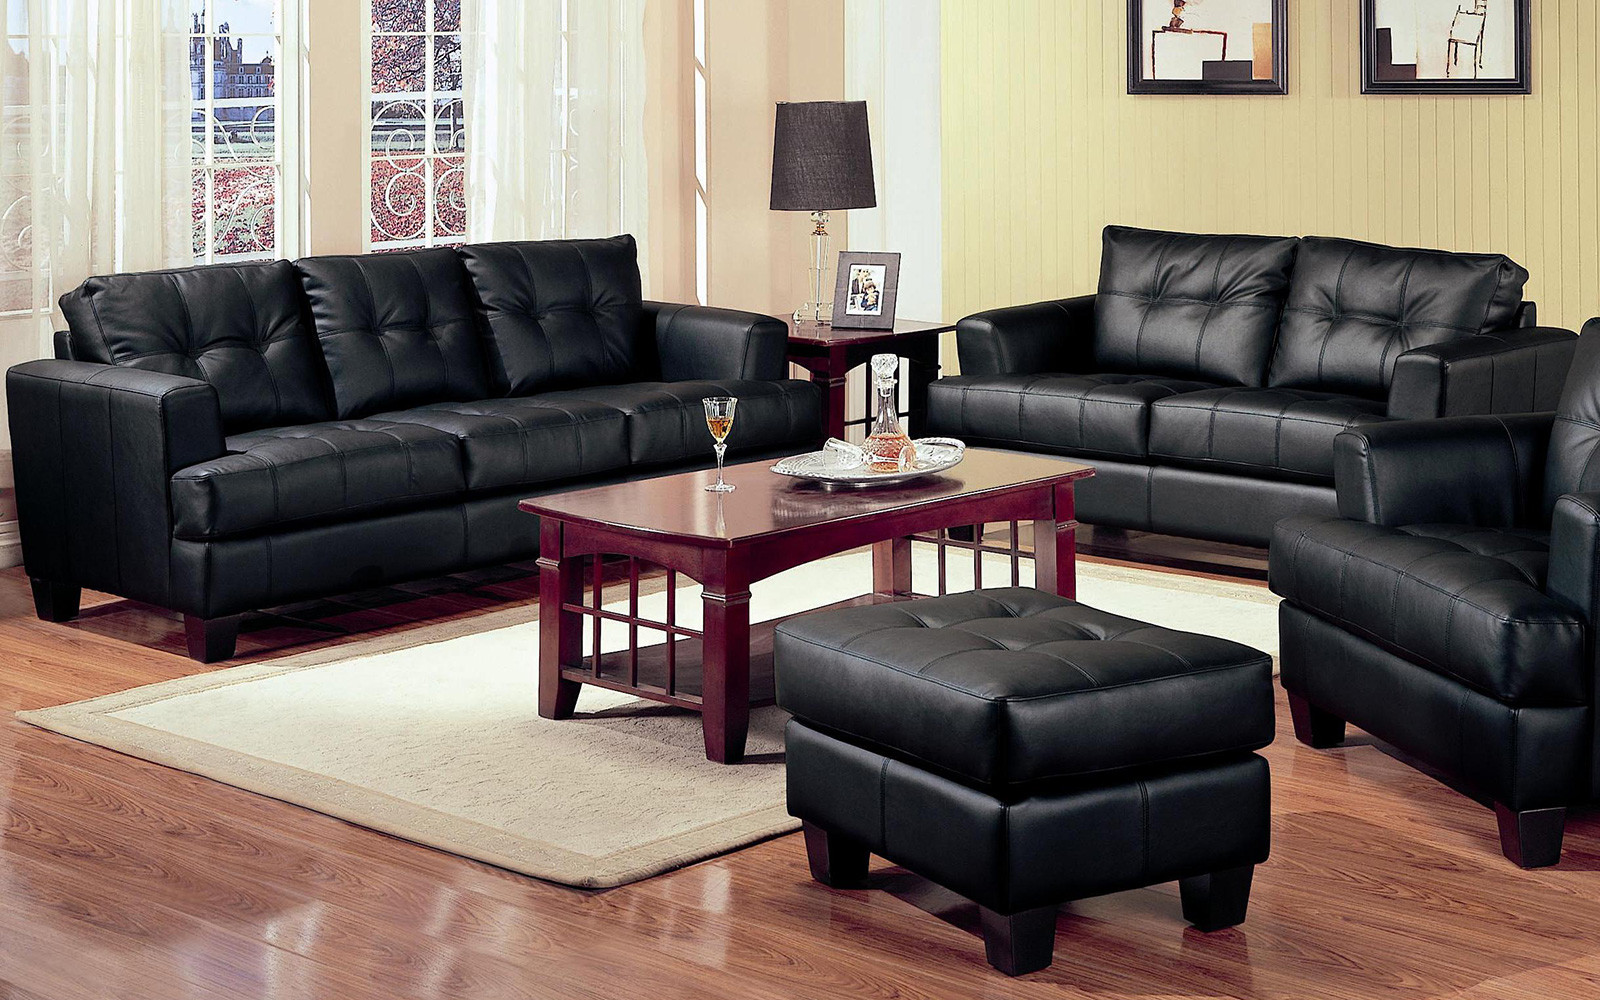 FURNITURE MANIA on Walmart Seller Reviews Marketplace Rating : 11201cbb ccf7 4a0a 819e dbdfa034484c1f96e61c18aec53e240765ead54a56bb7 from www.marketplacerating.com size 1600 x 1000 jpeg 482kB